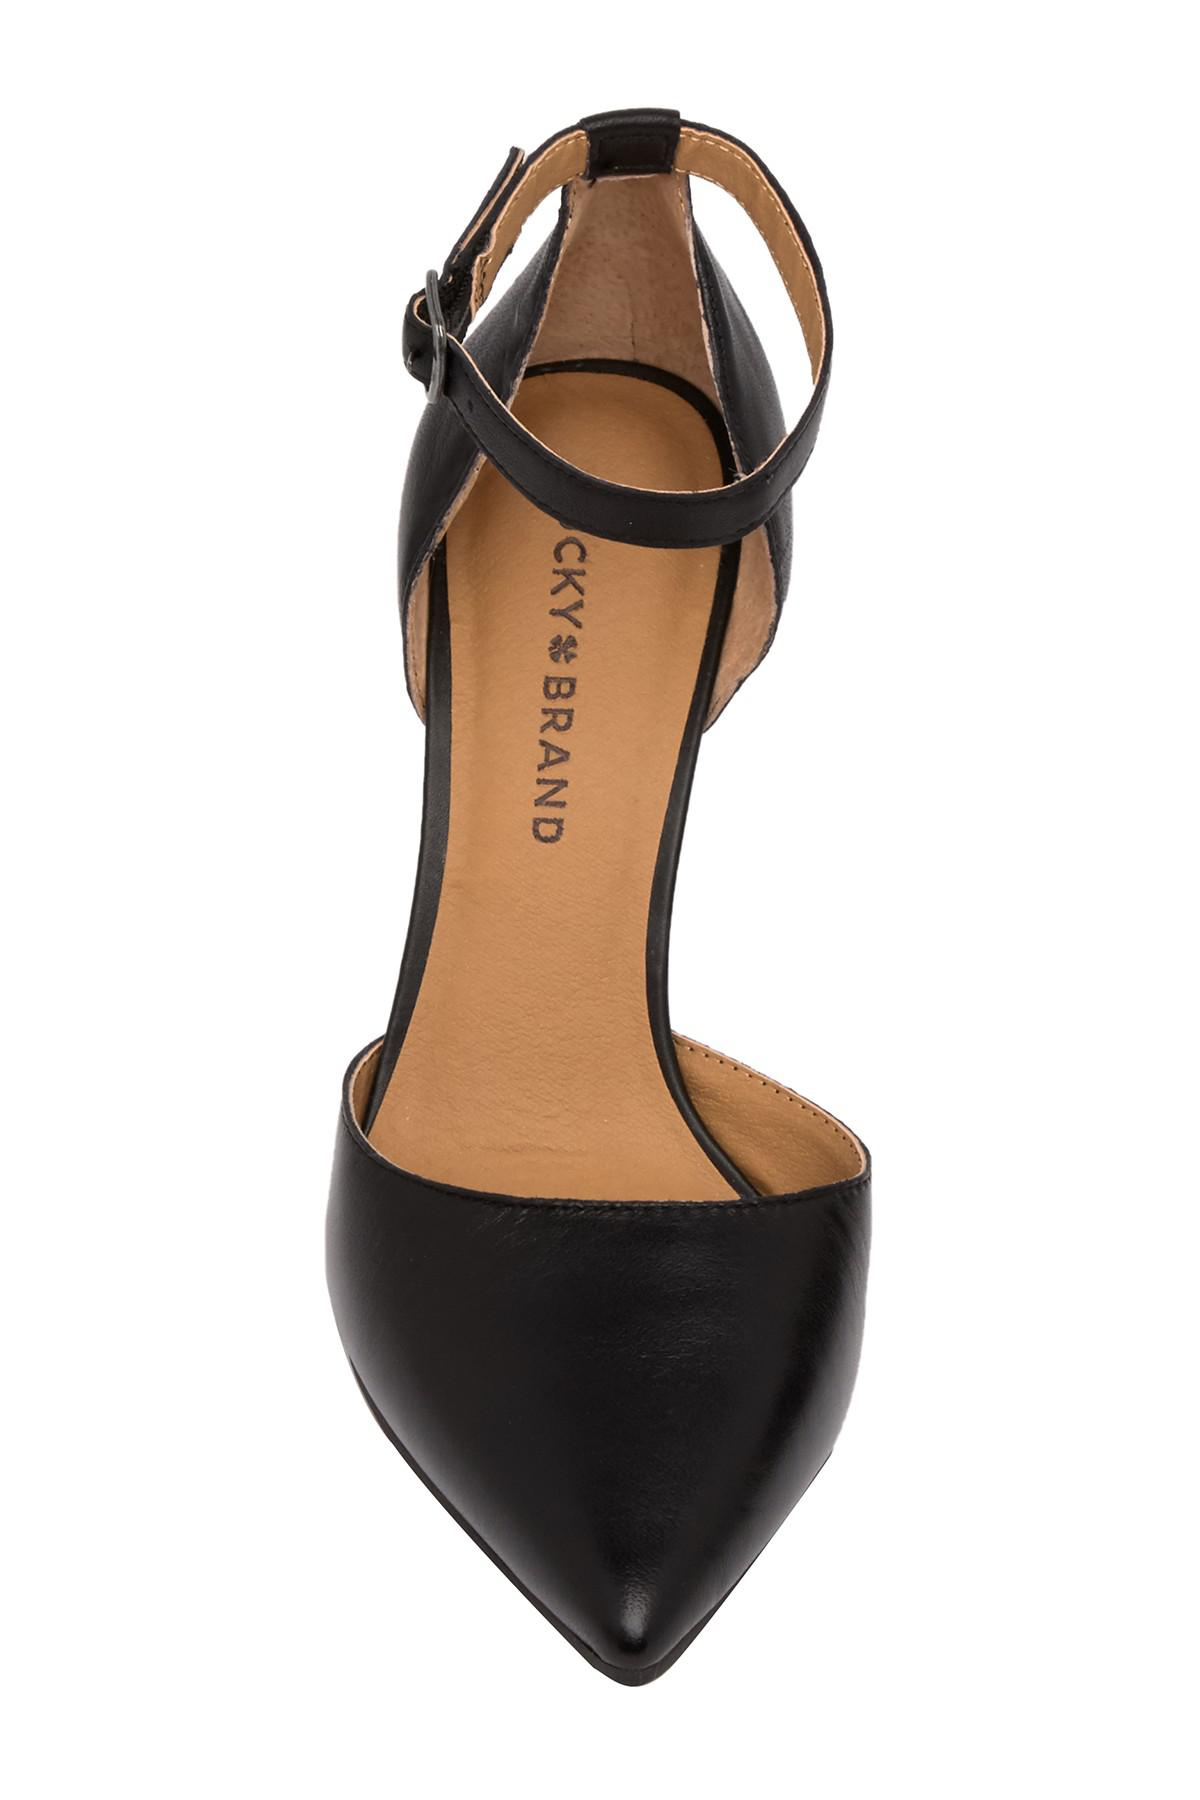 5cbc489aa5 Lyst - Lucky Brand Tukko D'orsay Ankle Strap Pump in Black